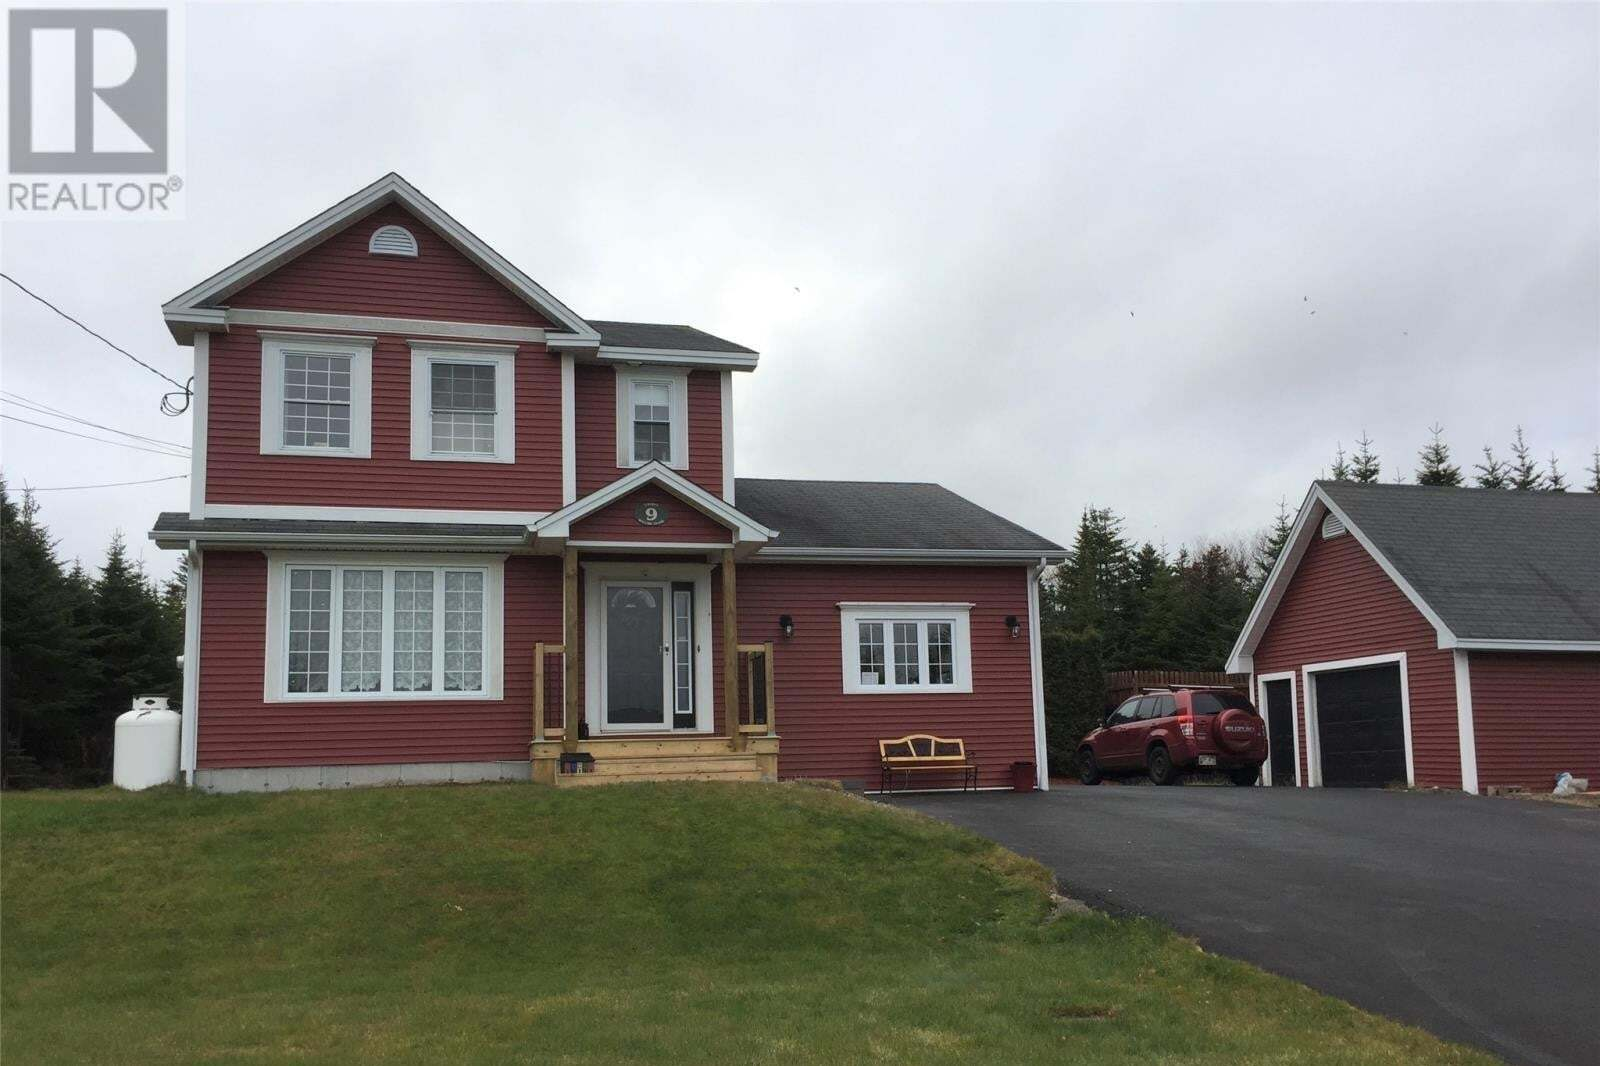 House for sale at 9 Laurel Willow Cs Logy Bay Newfoundland - MLS: 1212879